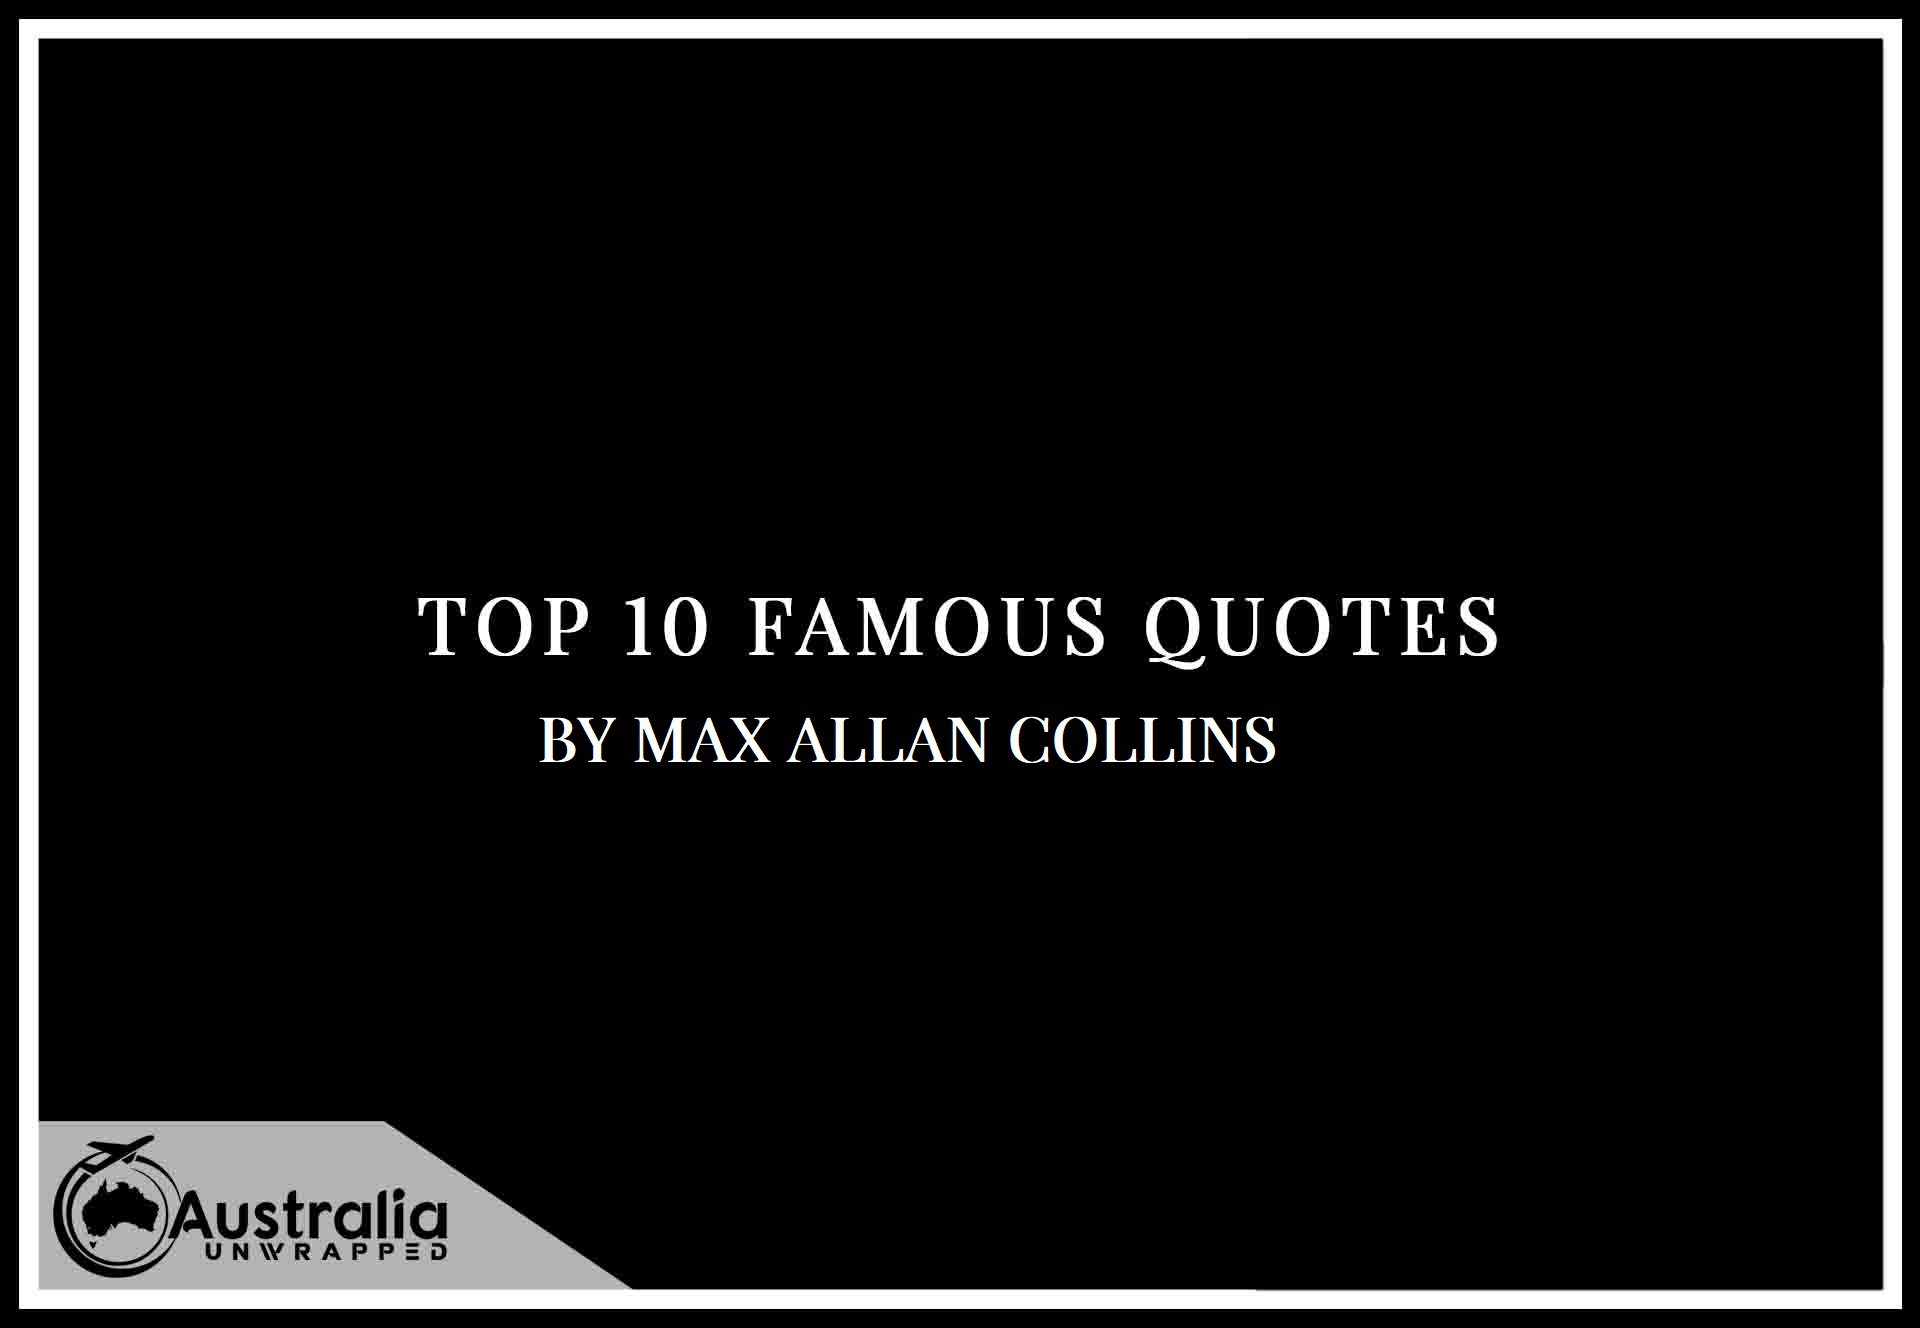 Top 10 Famous Quotes by Author Max Allan Collins